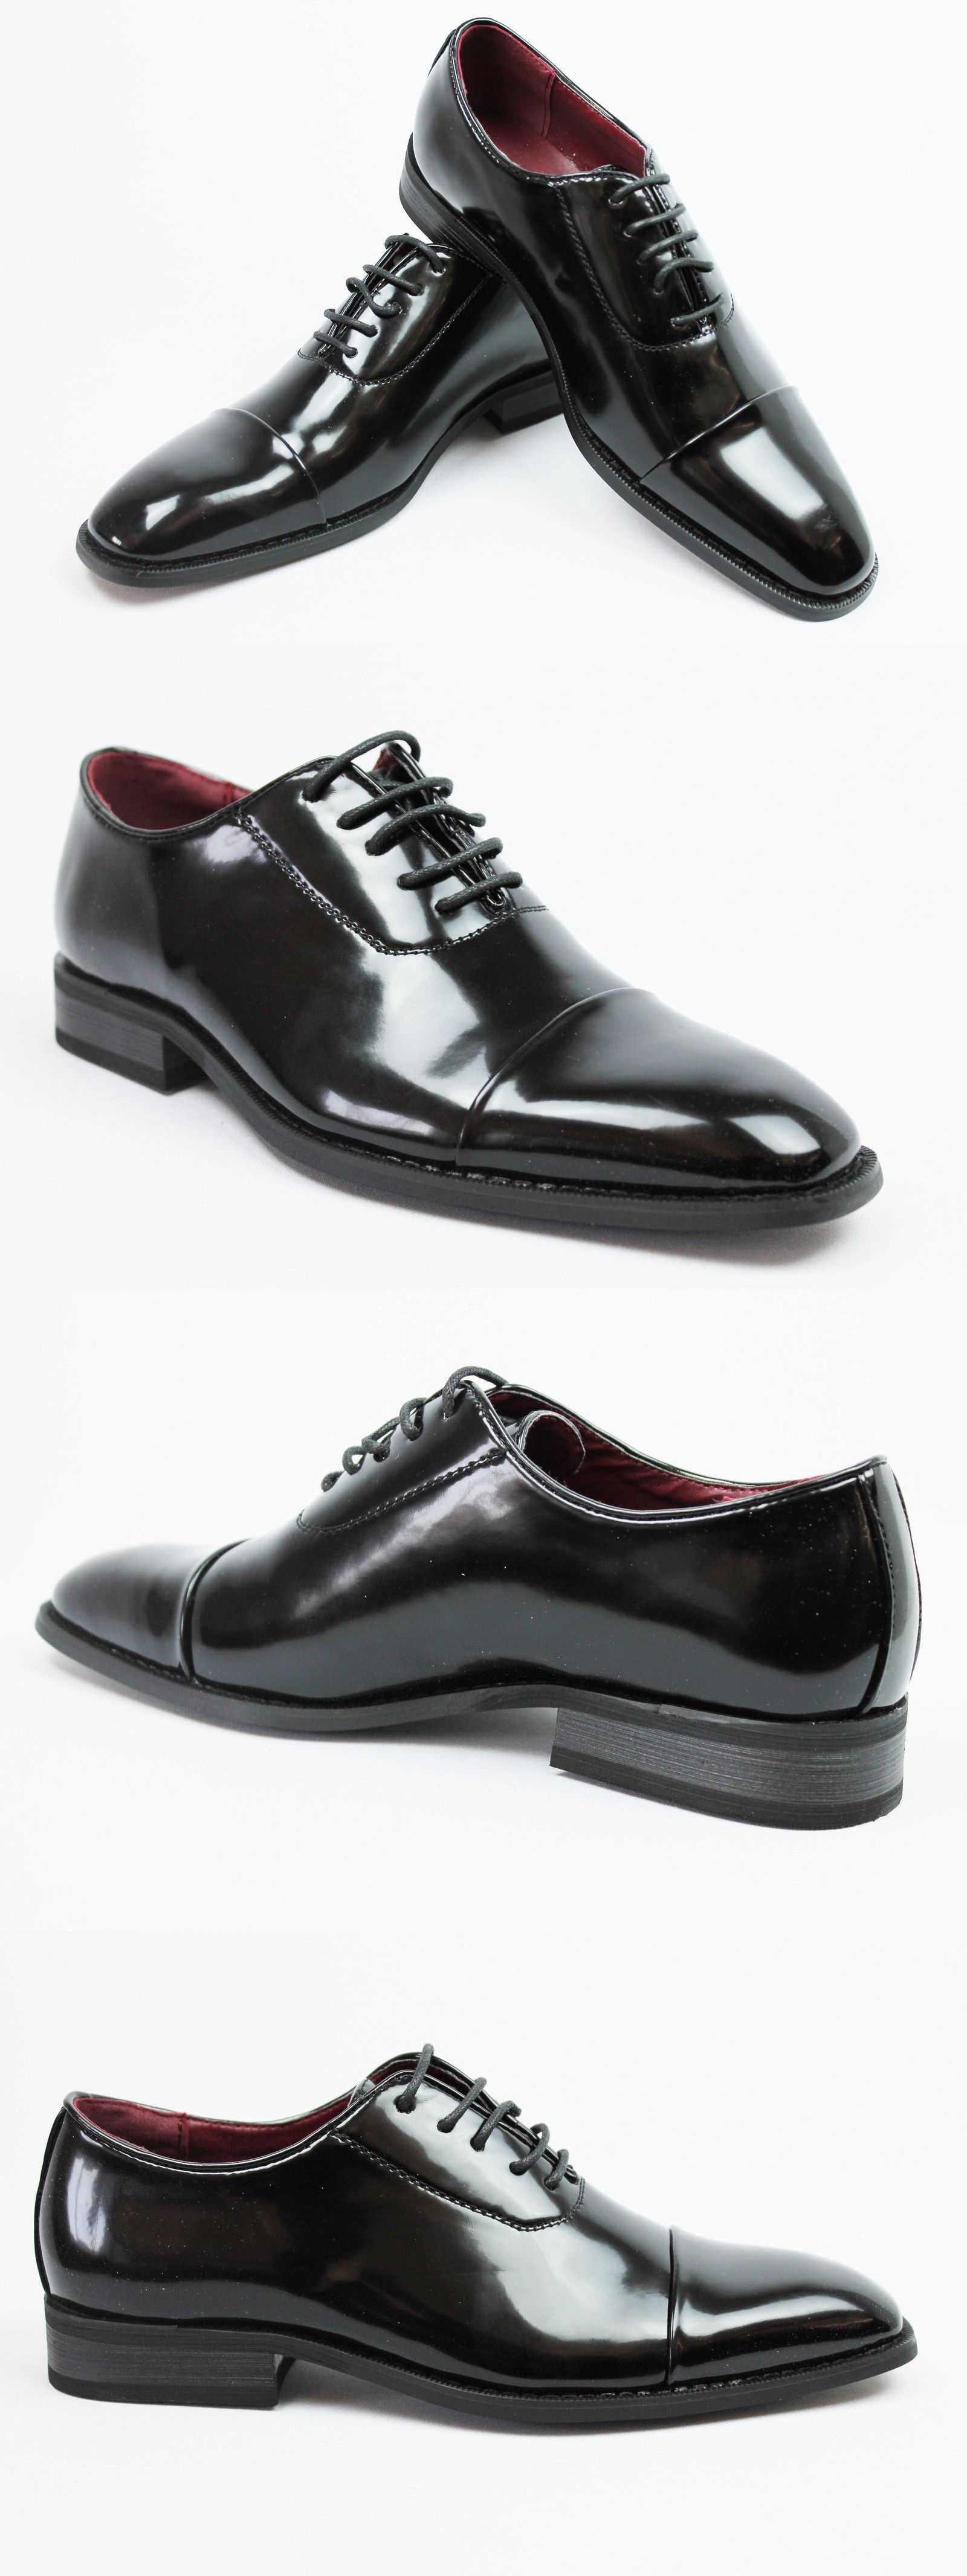 8faa1aa27a7c Dress Formal 53120  New Mens Dress Tuxedo Formal Shoes Cap Toe Patent  Leather Lace Up Oxfords New -  BUY IT NOW ONLY   39.99 on eBay!